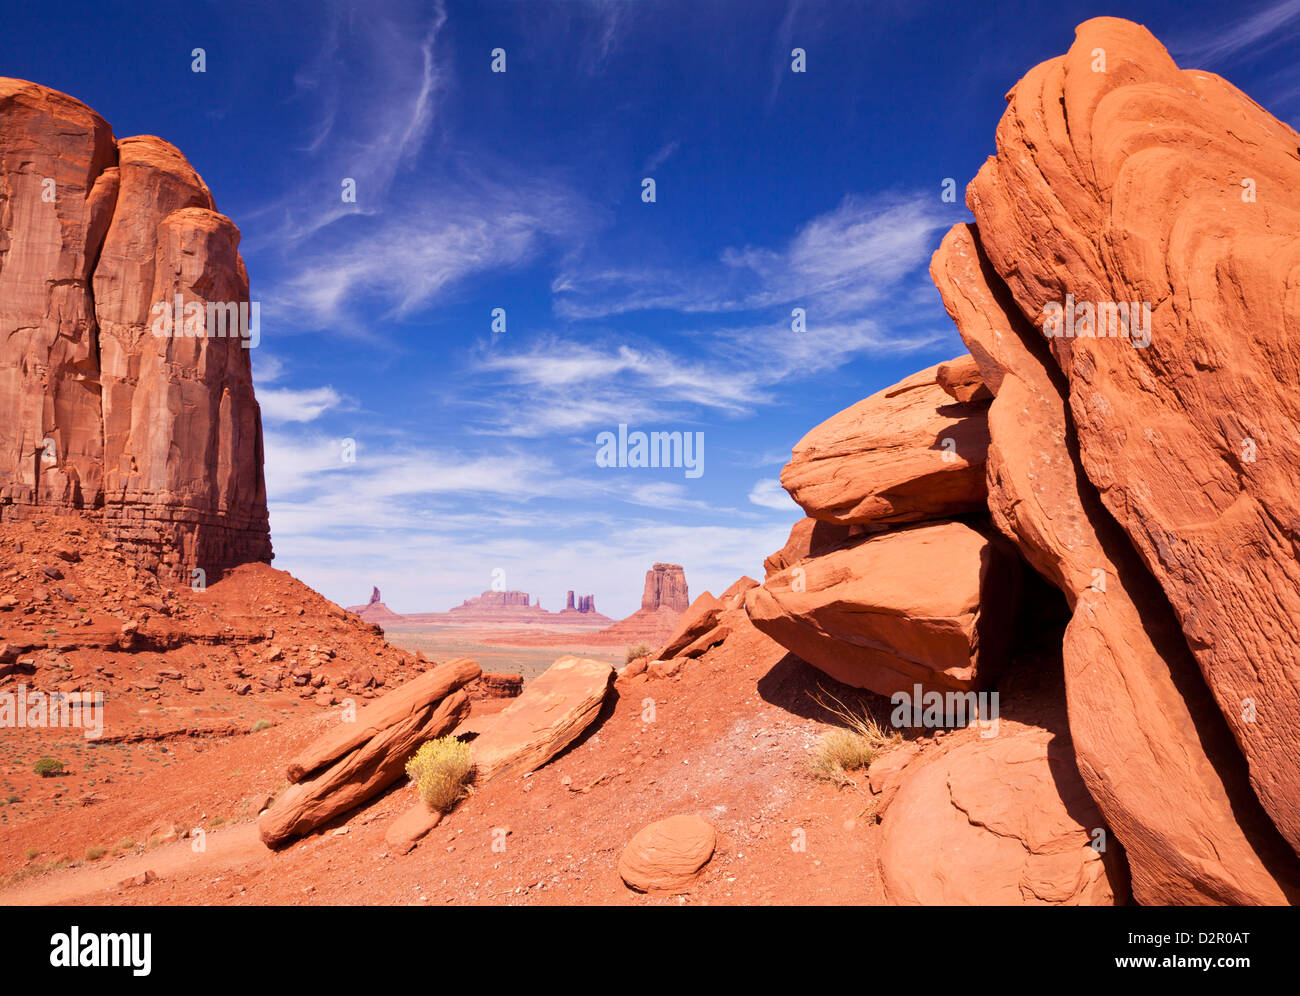 View from North Window, Monument Valley Navajo Tribal Park, Arizona, United States of America, North America - Stock Image